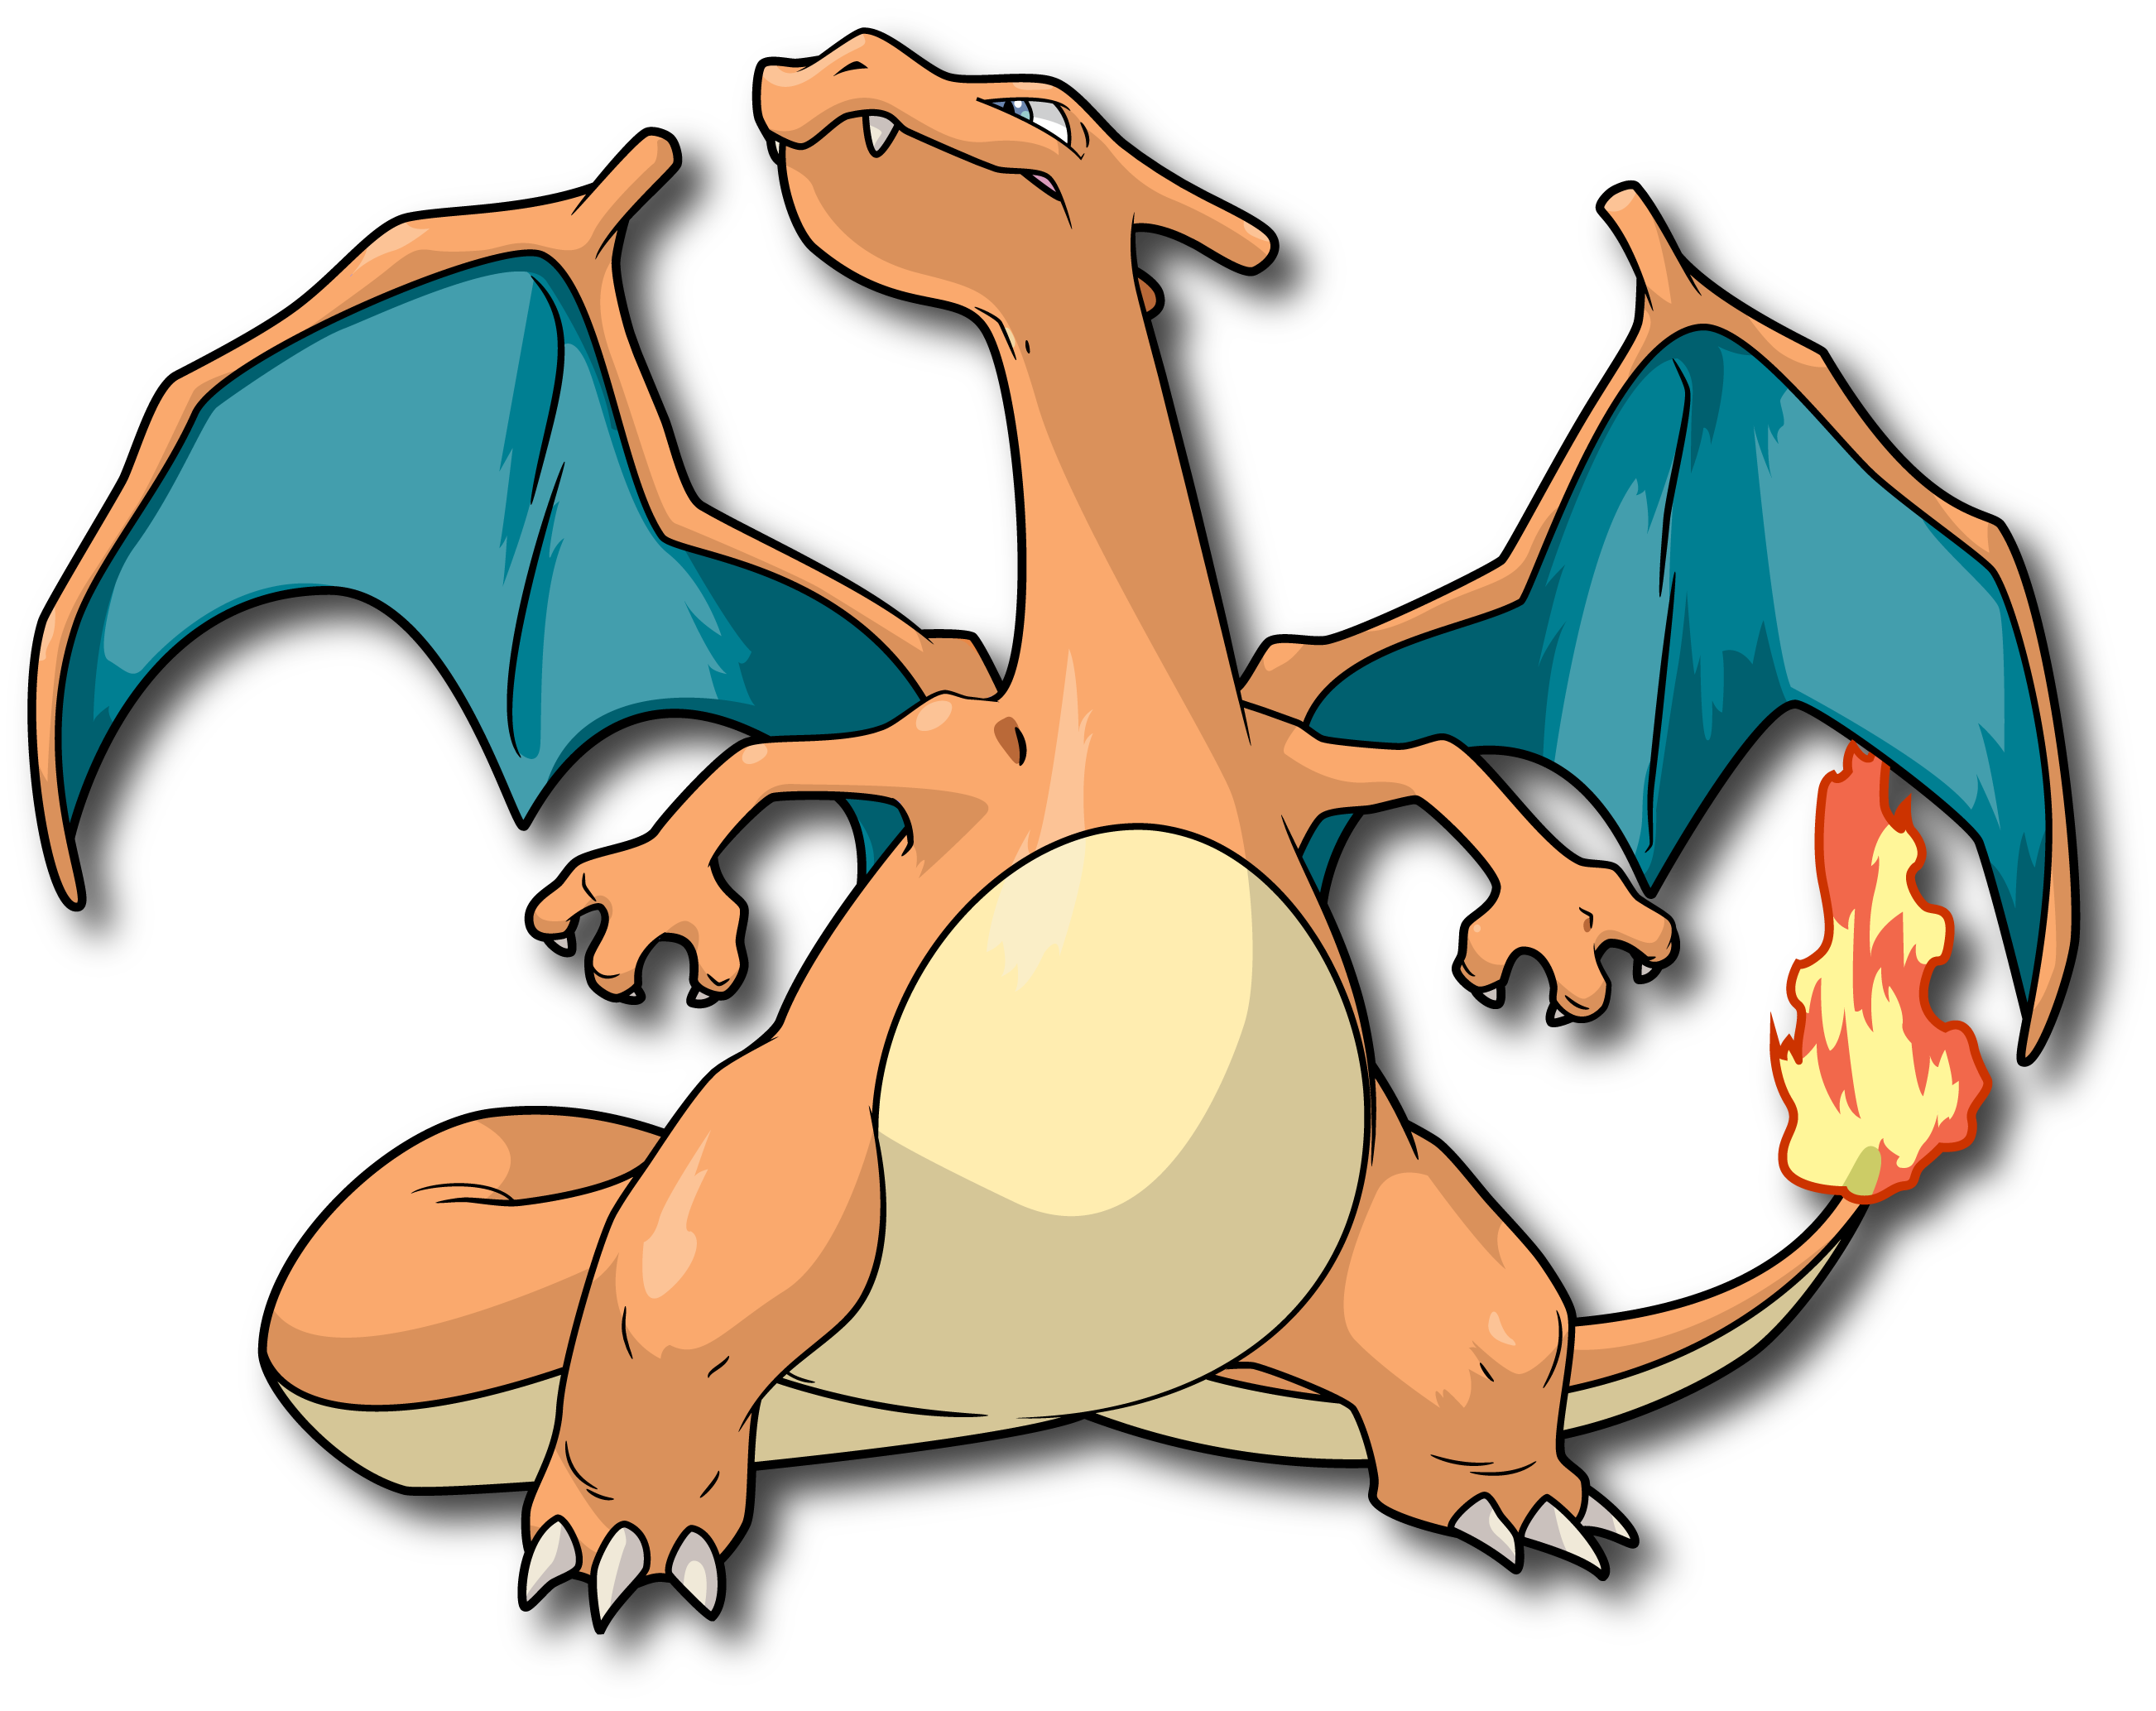 Charizard vector 1080p. By rayo on